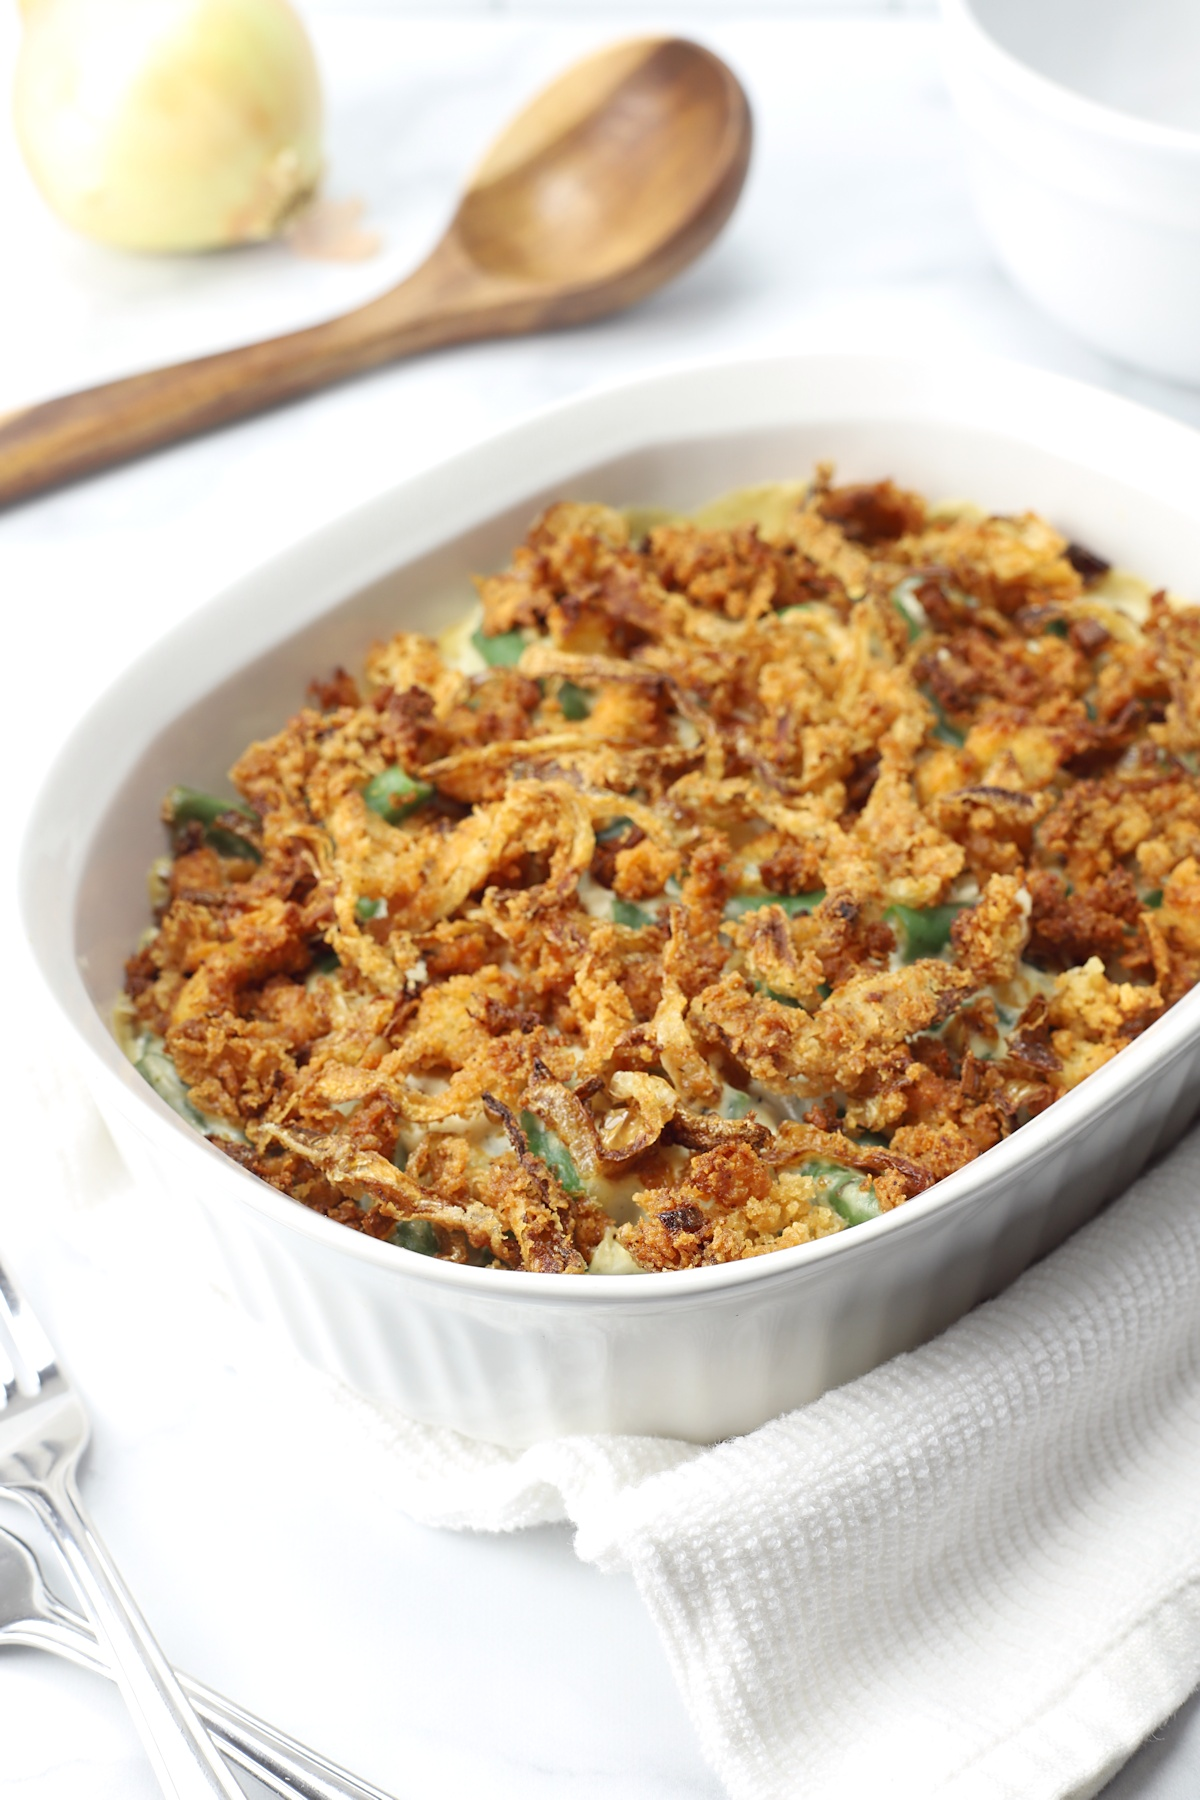 Green bean casserole in a white dish.